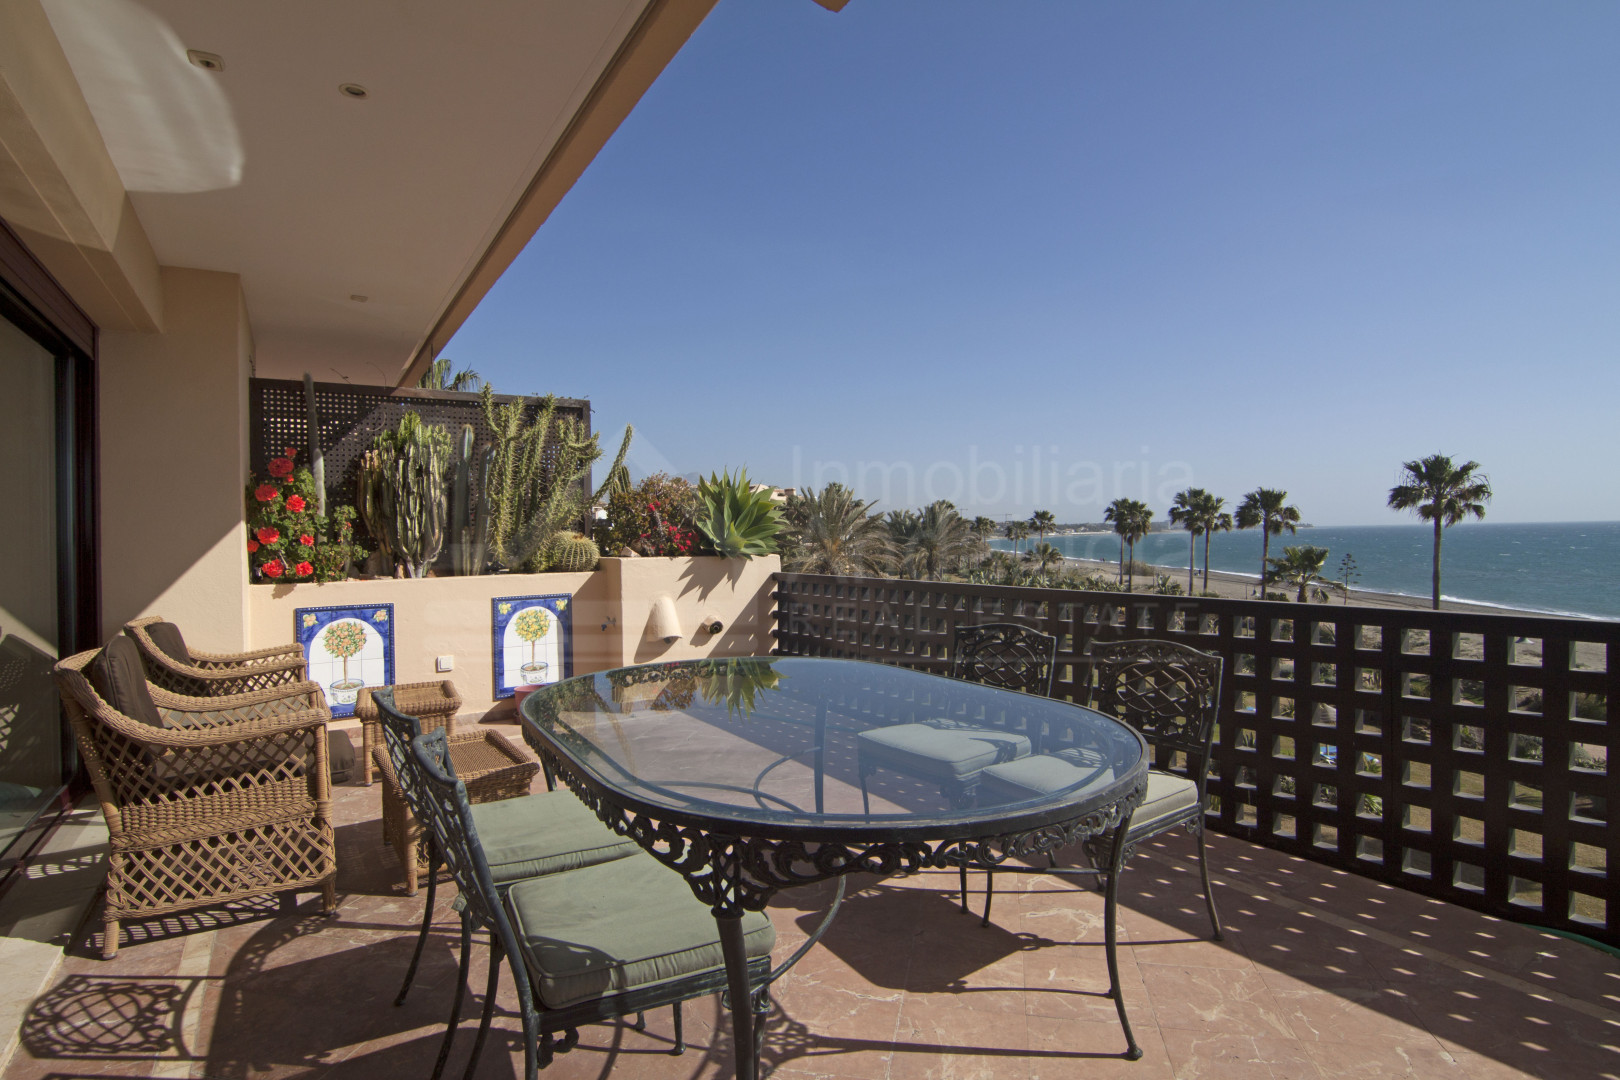 Luxury contemporary style apartment by the beach for sale Costalita Estepona